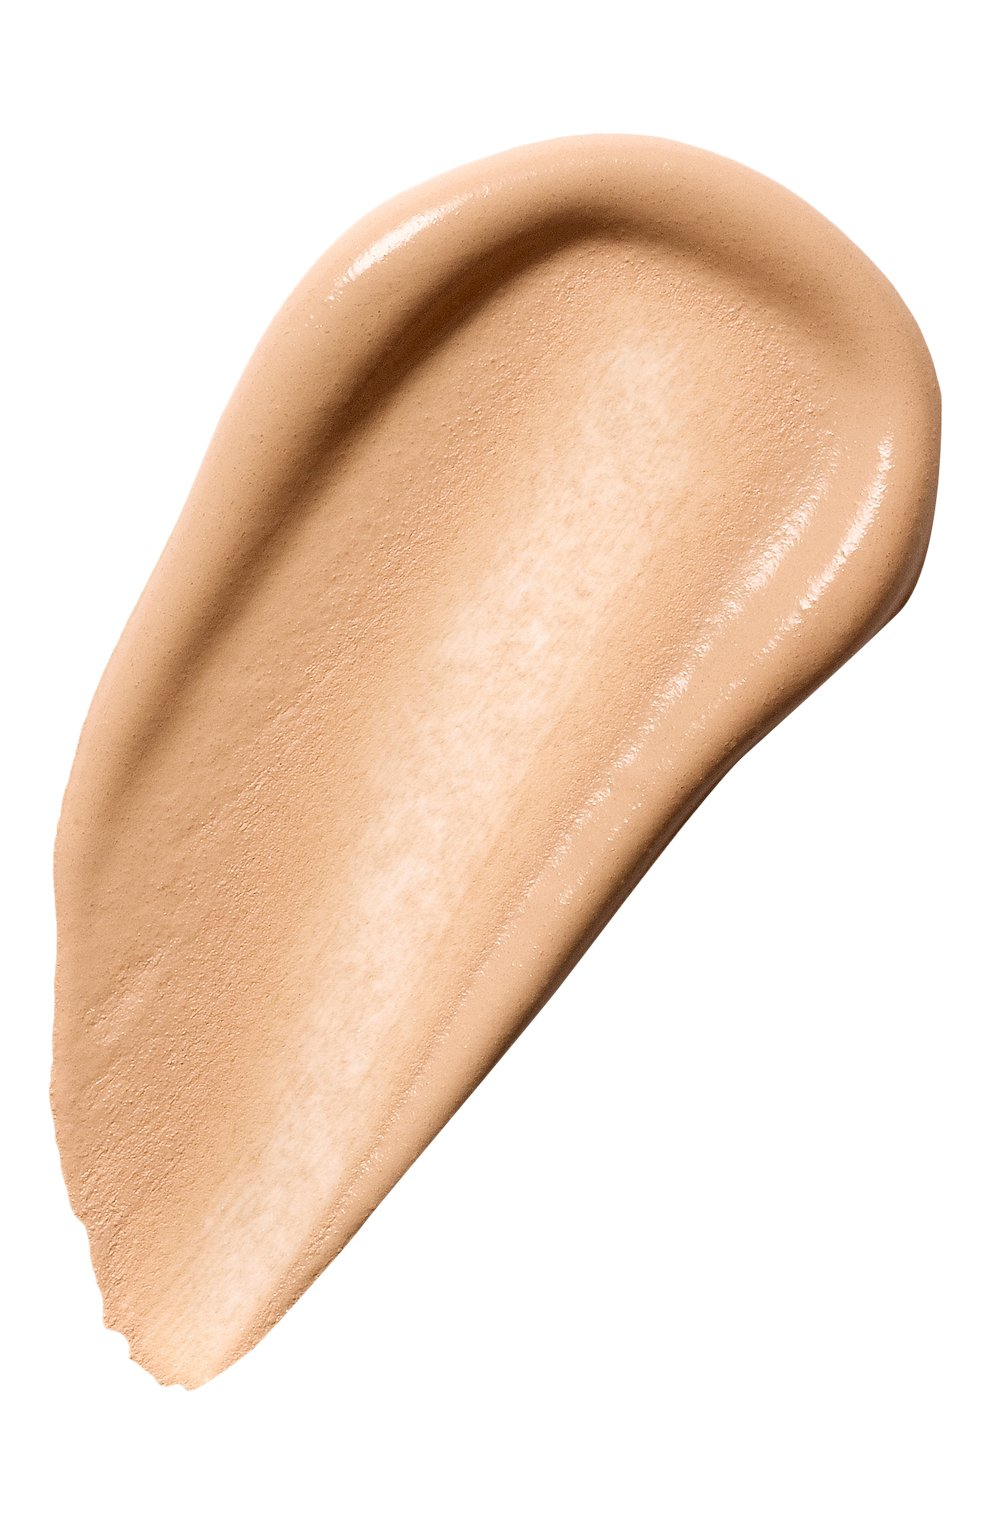 Тональное средство Skin Long-Wear Weigthless Foundation SPF 15, Neutral Sand Bobbi Brown | Фото №2